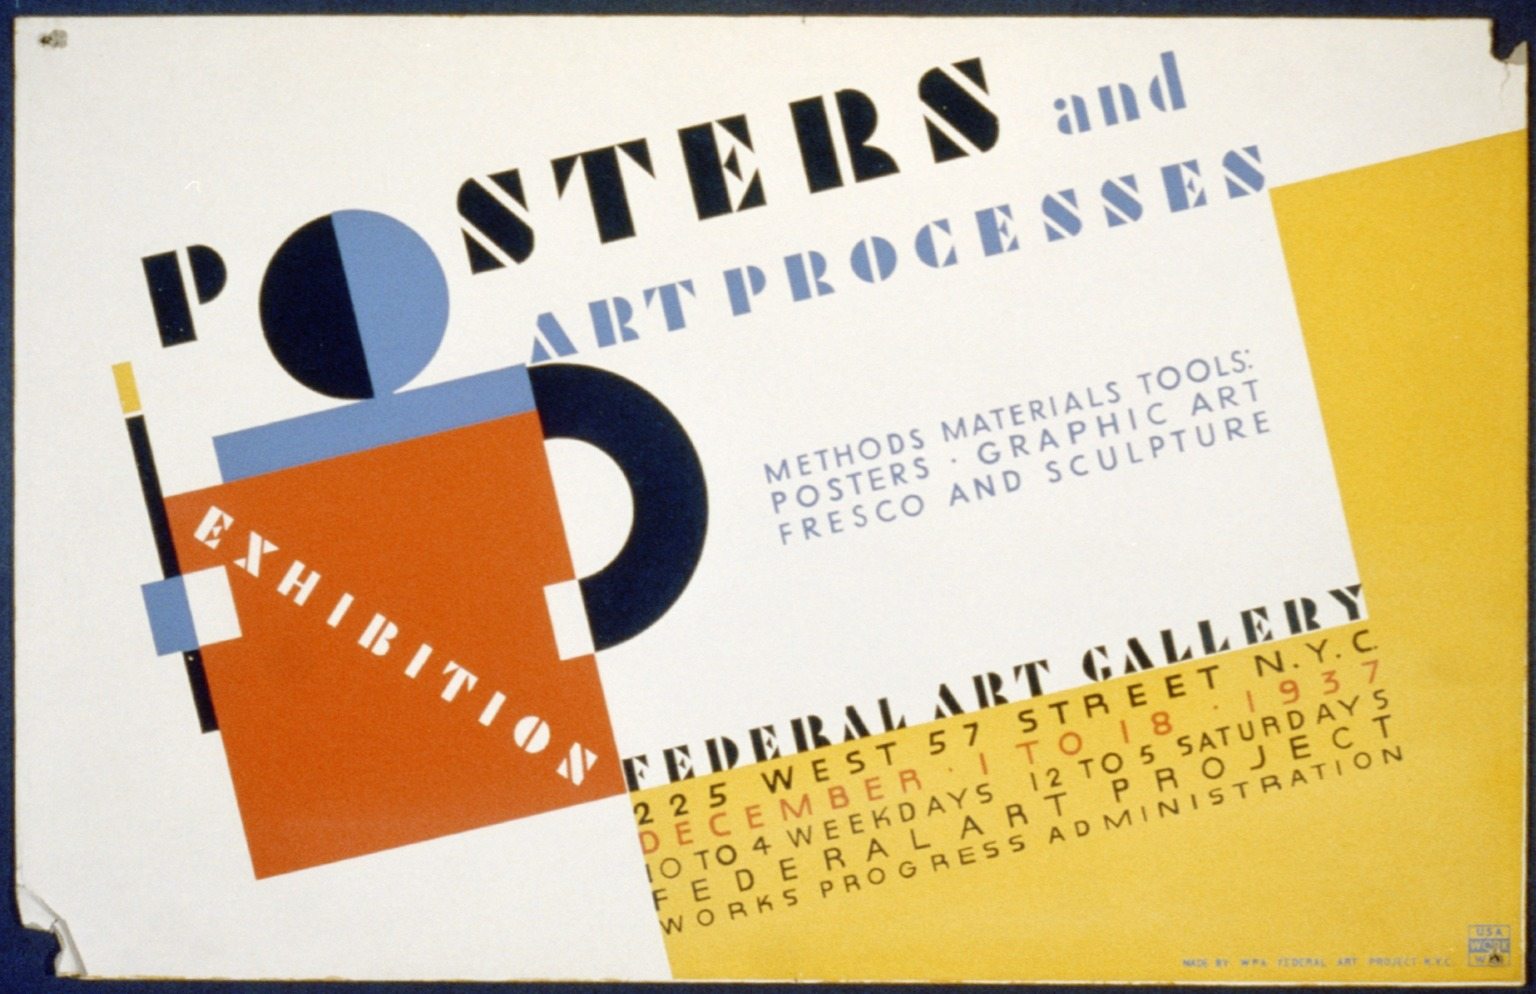 http://upload.wikimedia.org/wikipedia/commons/5/59/Posters_and_art_processes_LCCN98507145.jpg